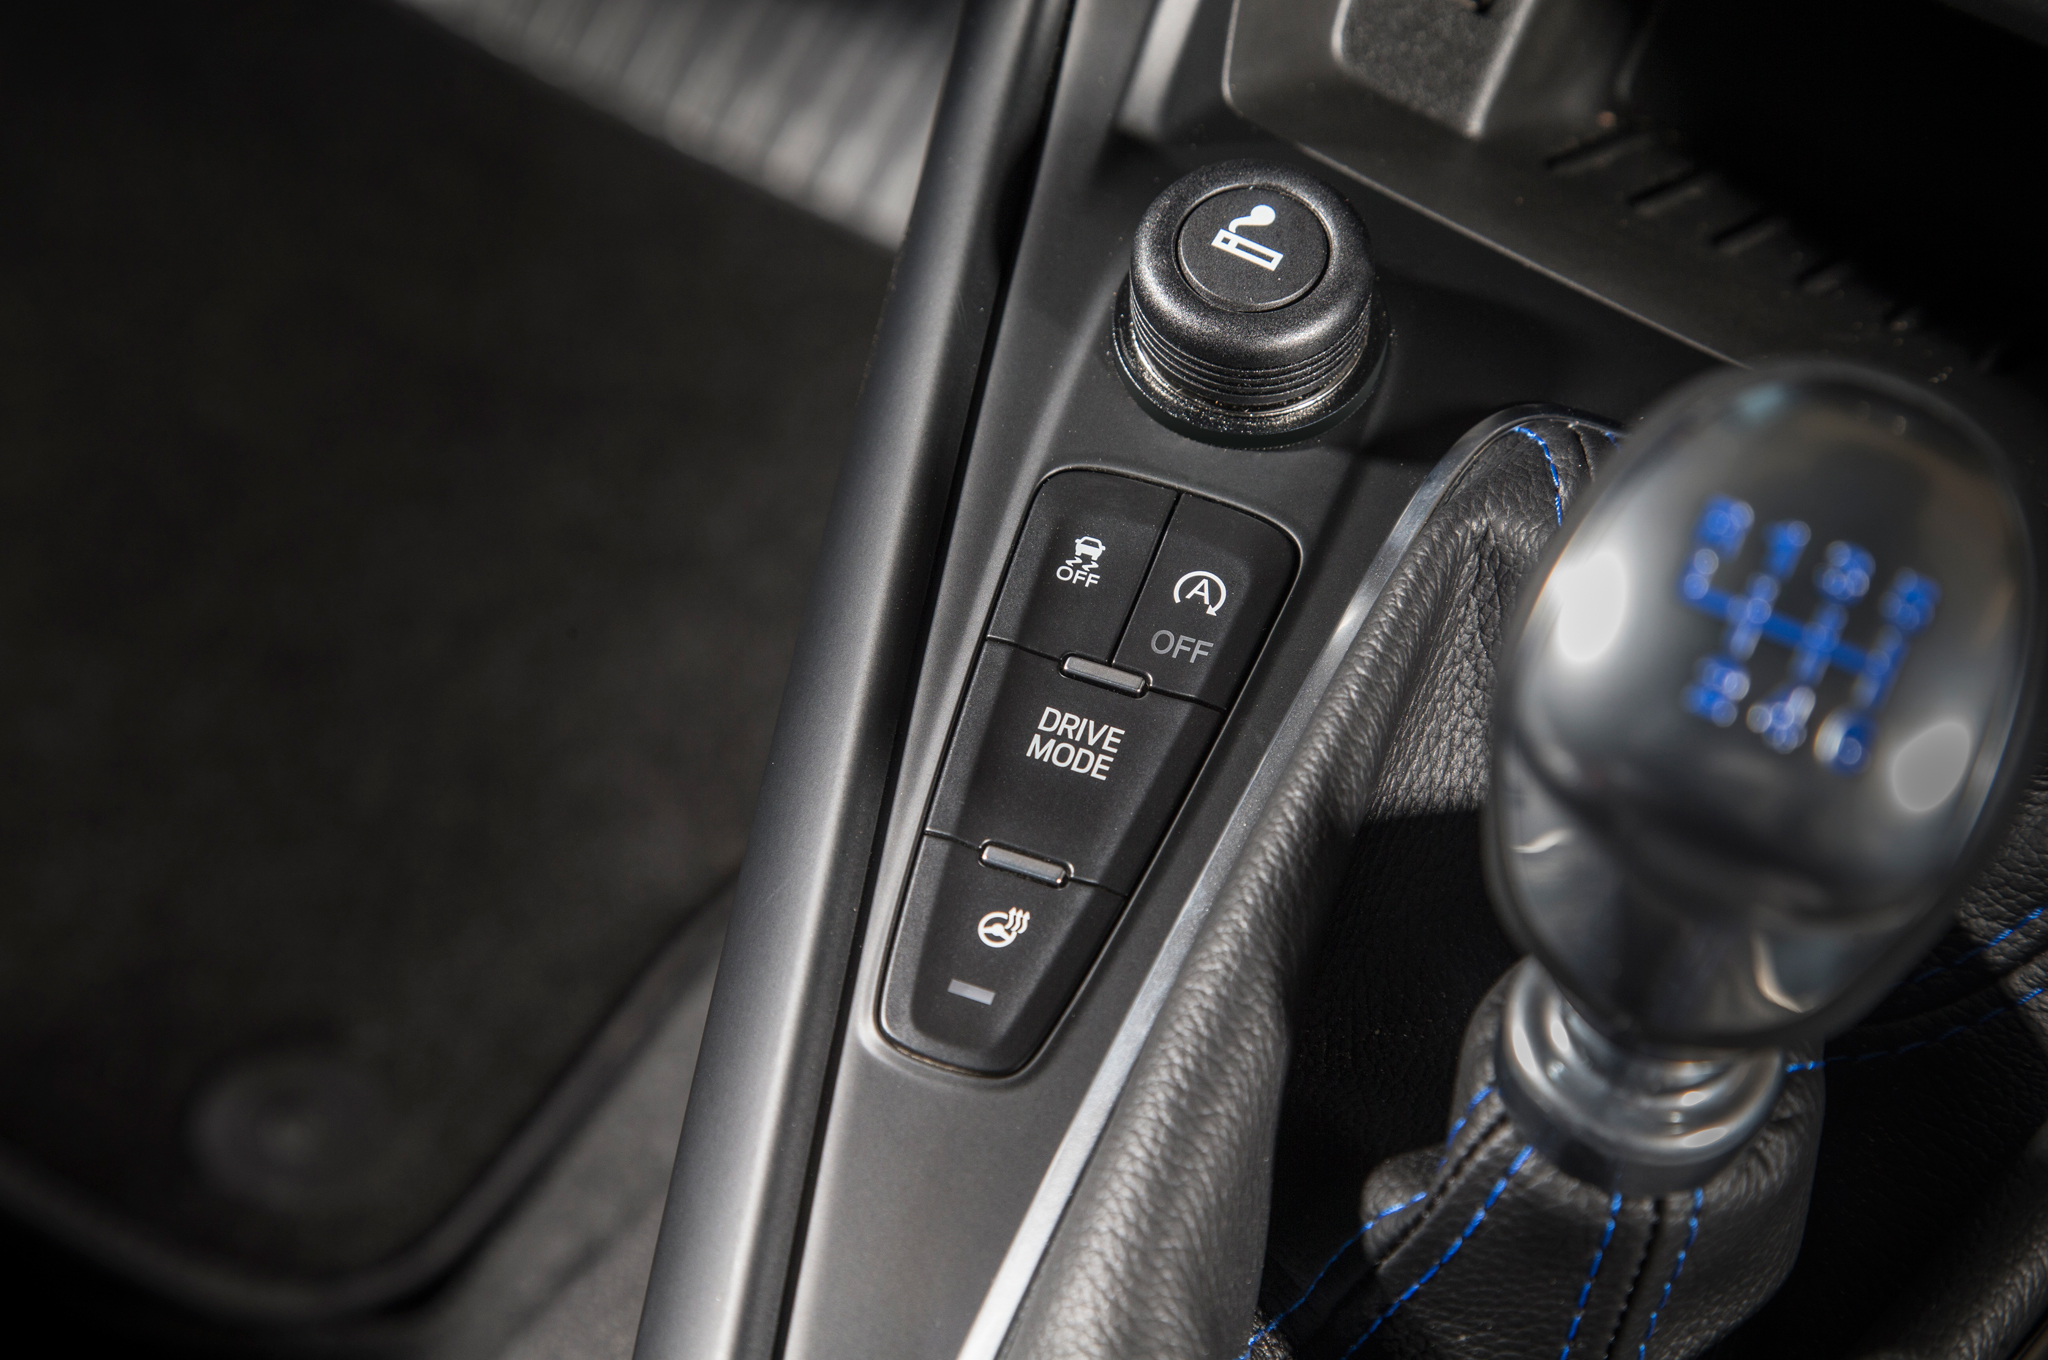 Ford's drift stick offers some manual control in an electronic.